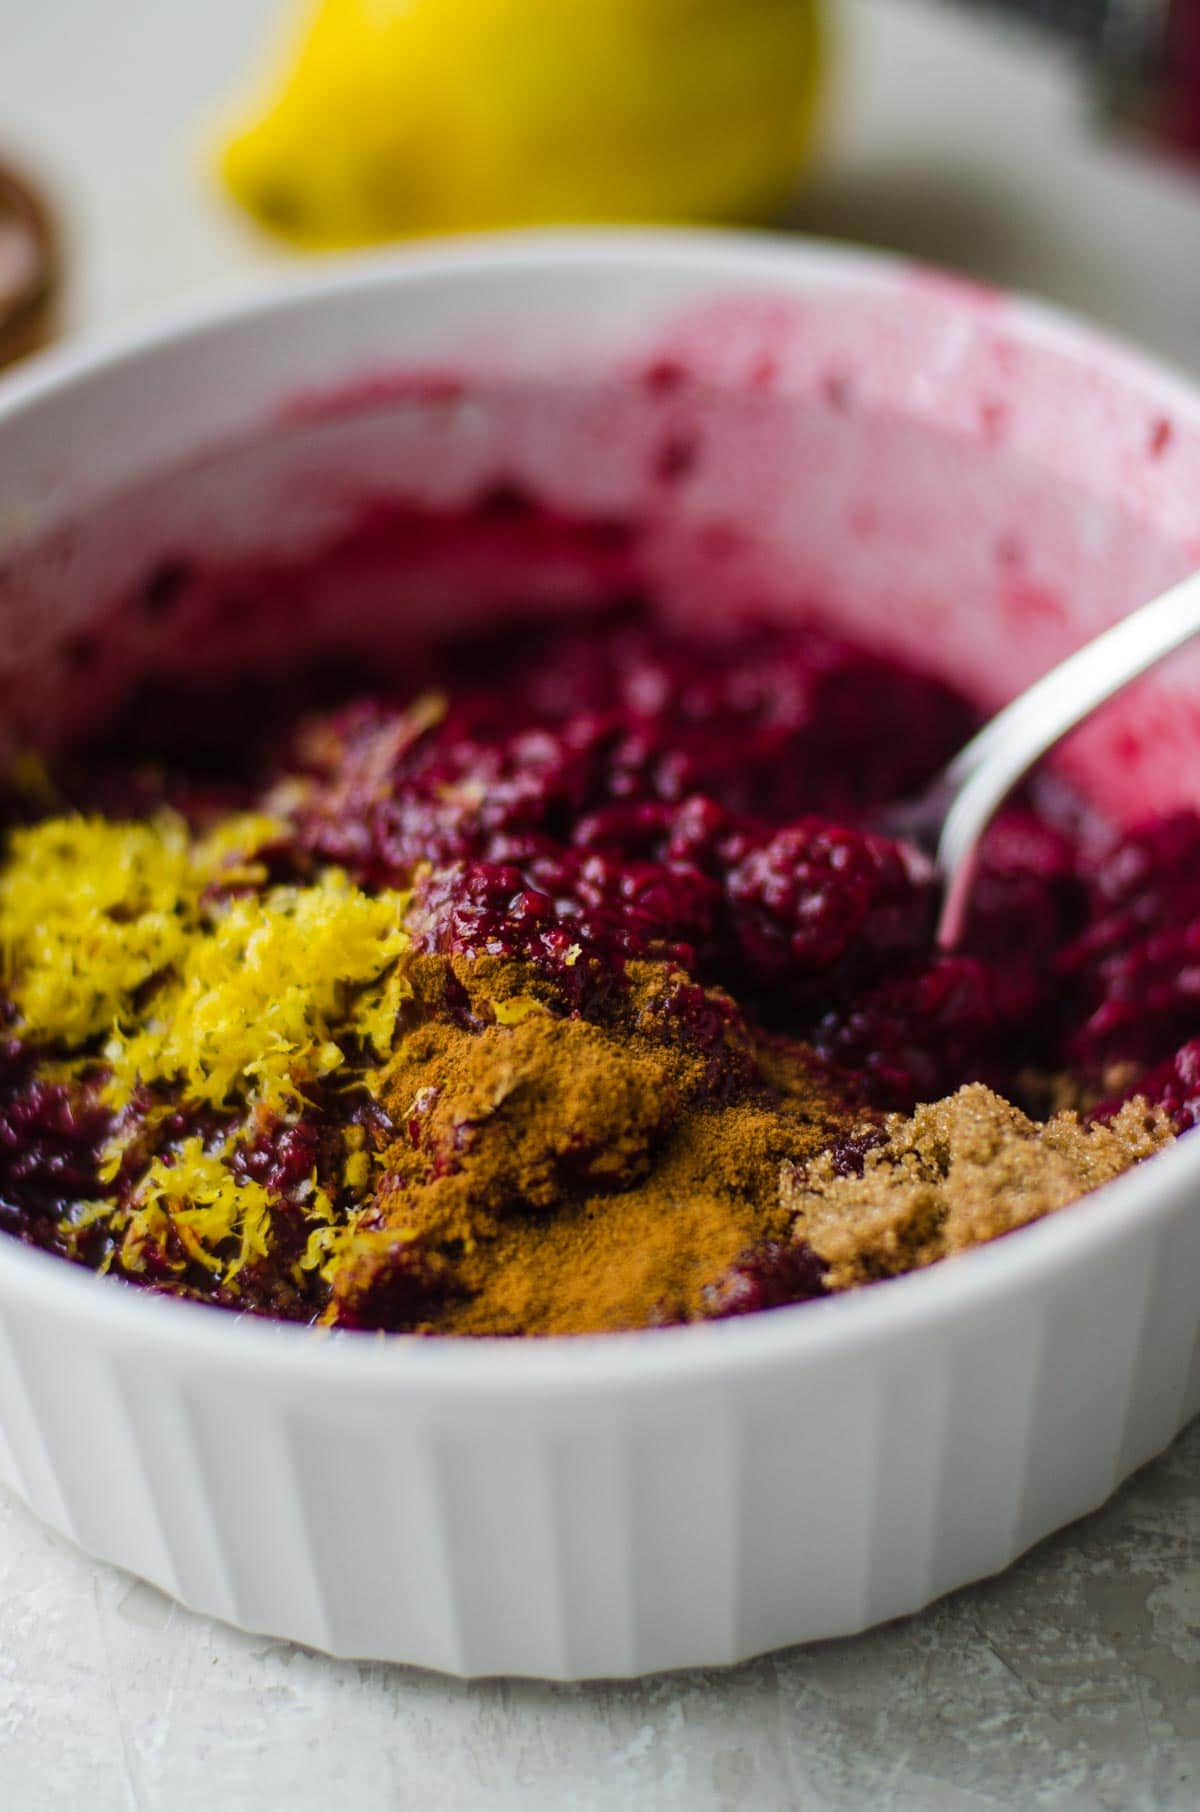 A white bowl of thawed frozen berries, lemon zest, and spices.